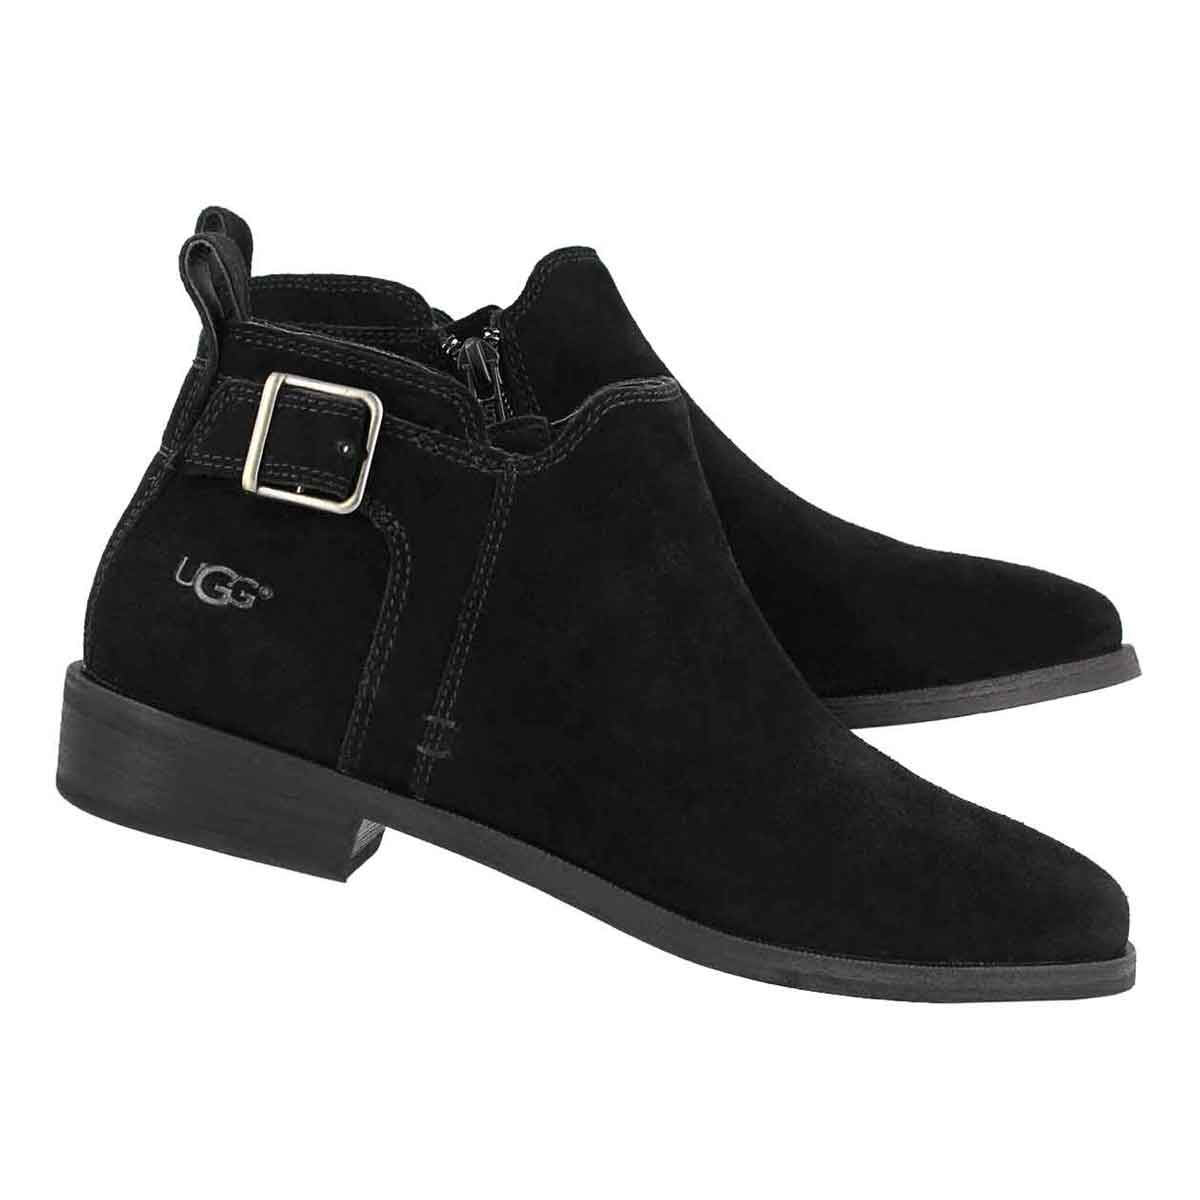 Lds Kelsea blk slip on casual bootie